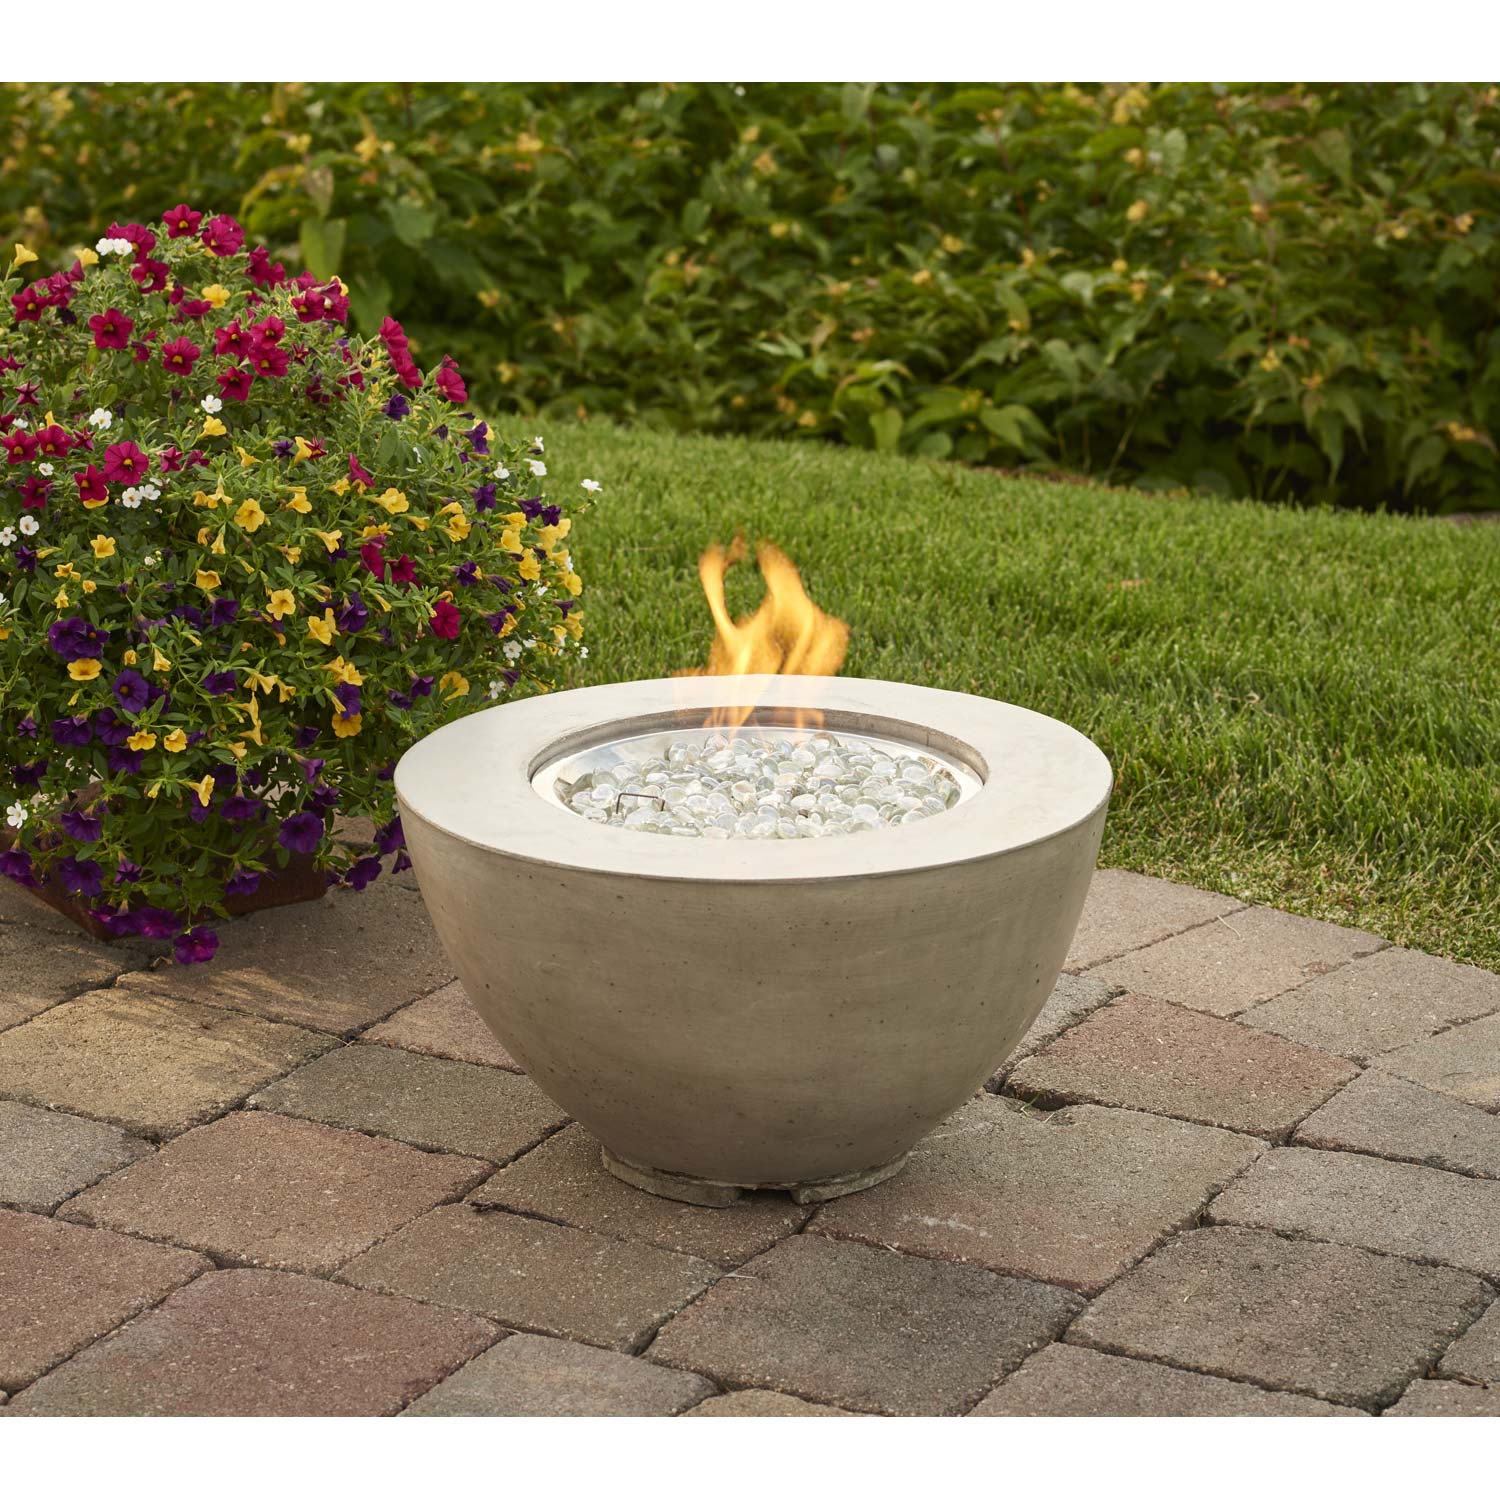 "Cove 12"" Gas Fire Pit Bowl"